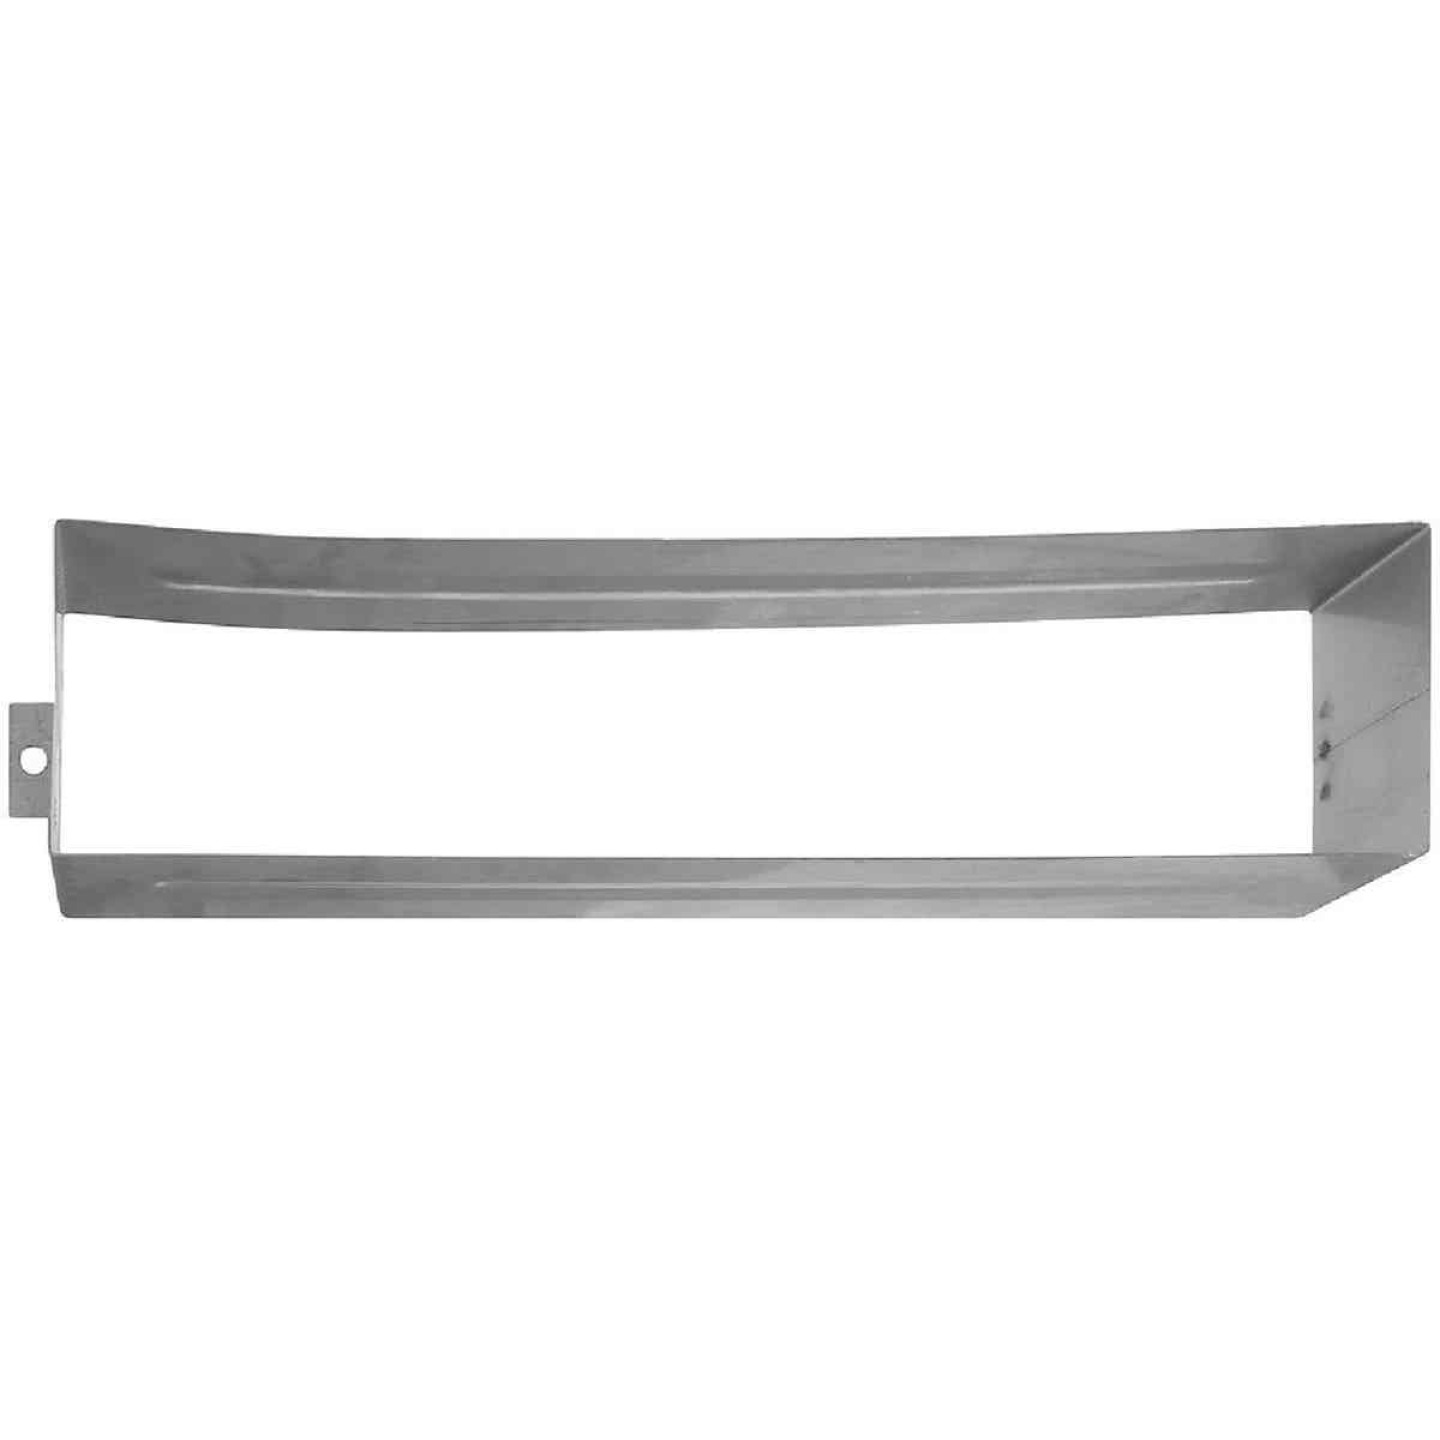 National 2 In. x 2-5/8 In. x 11-3/8 In. Mail Slot Sleeve Image 1